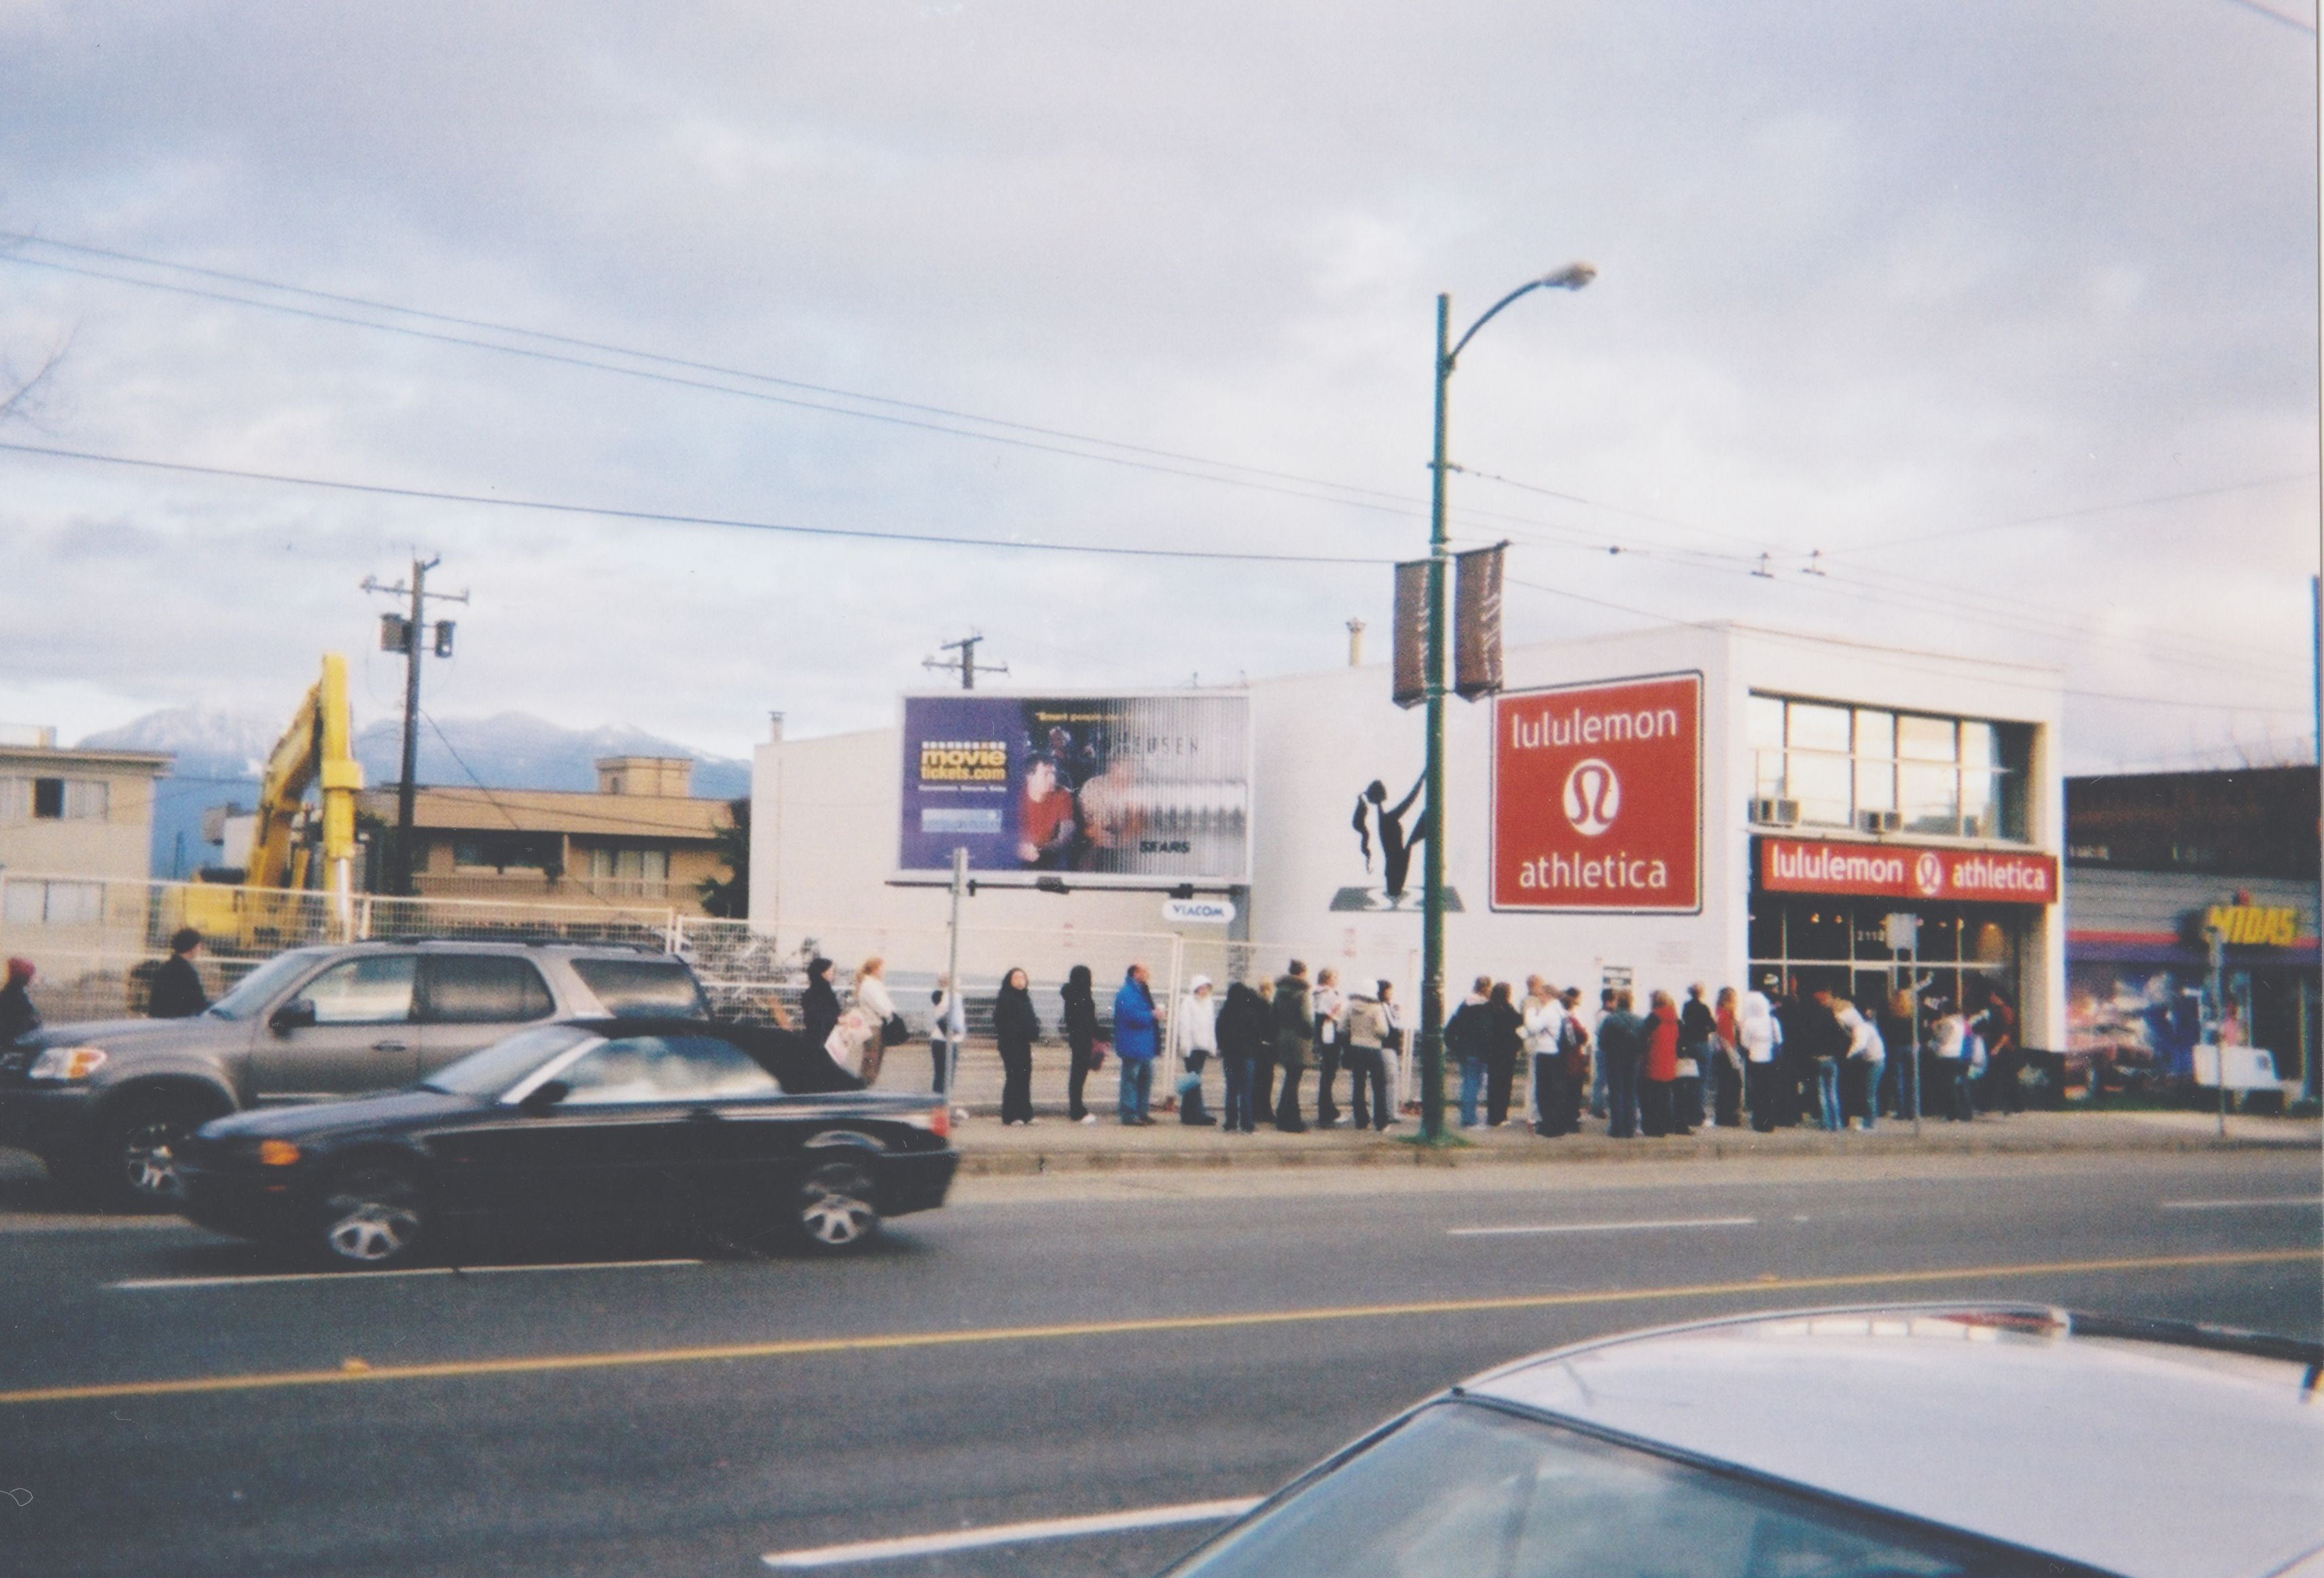 Lululemon store 6 months after opening – lines down the street, 2001